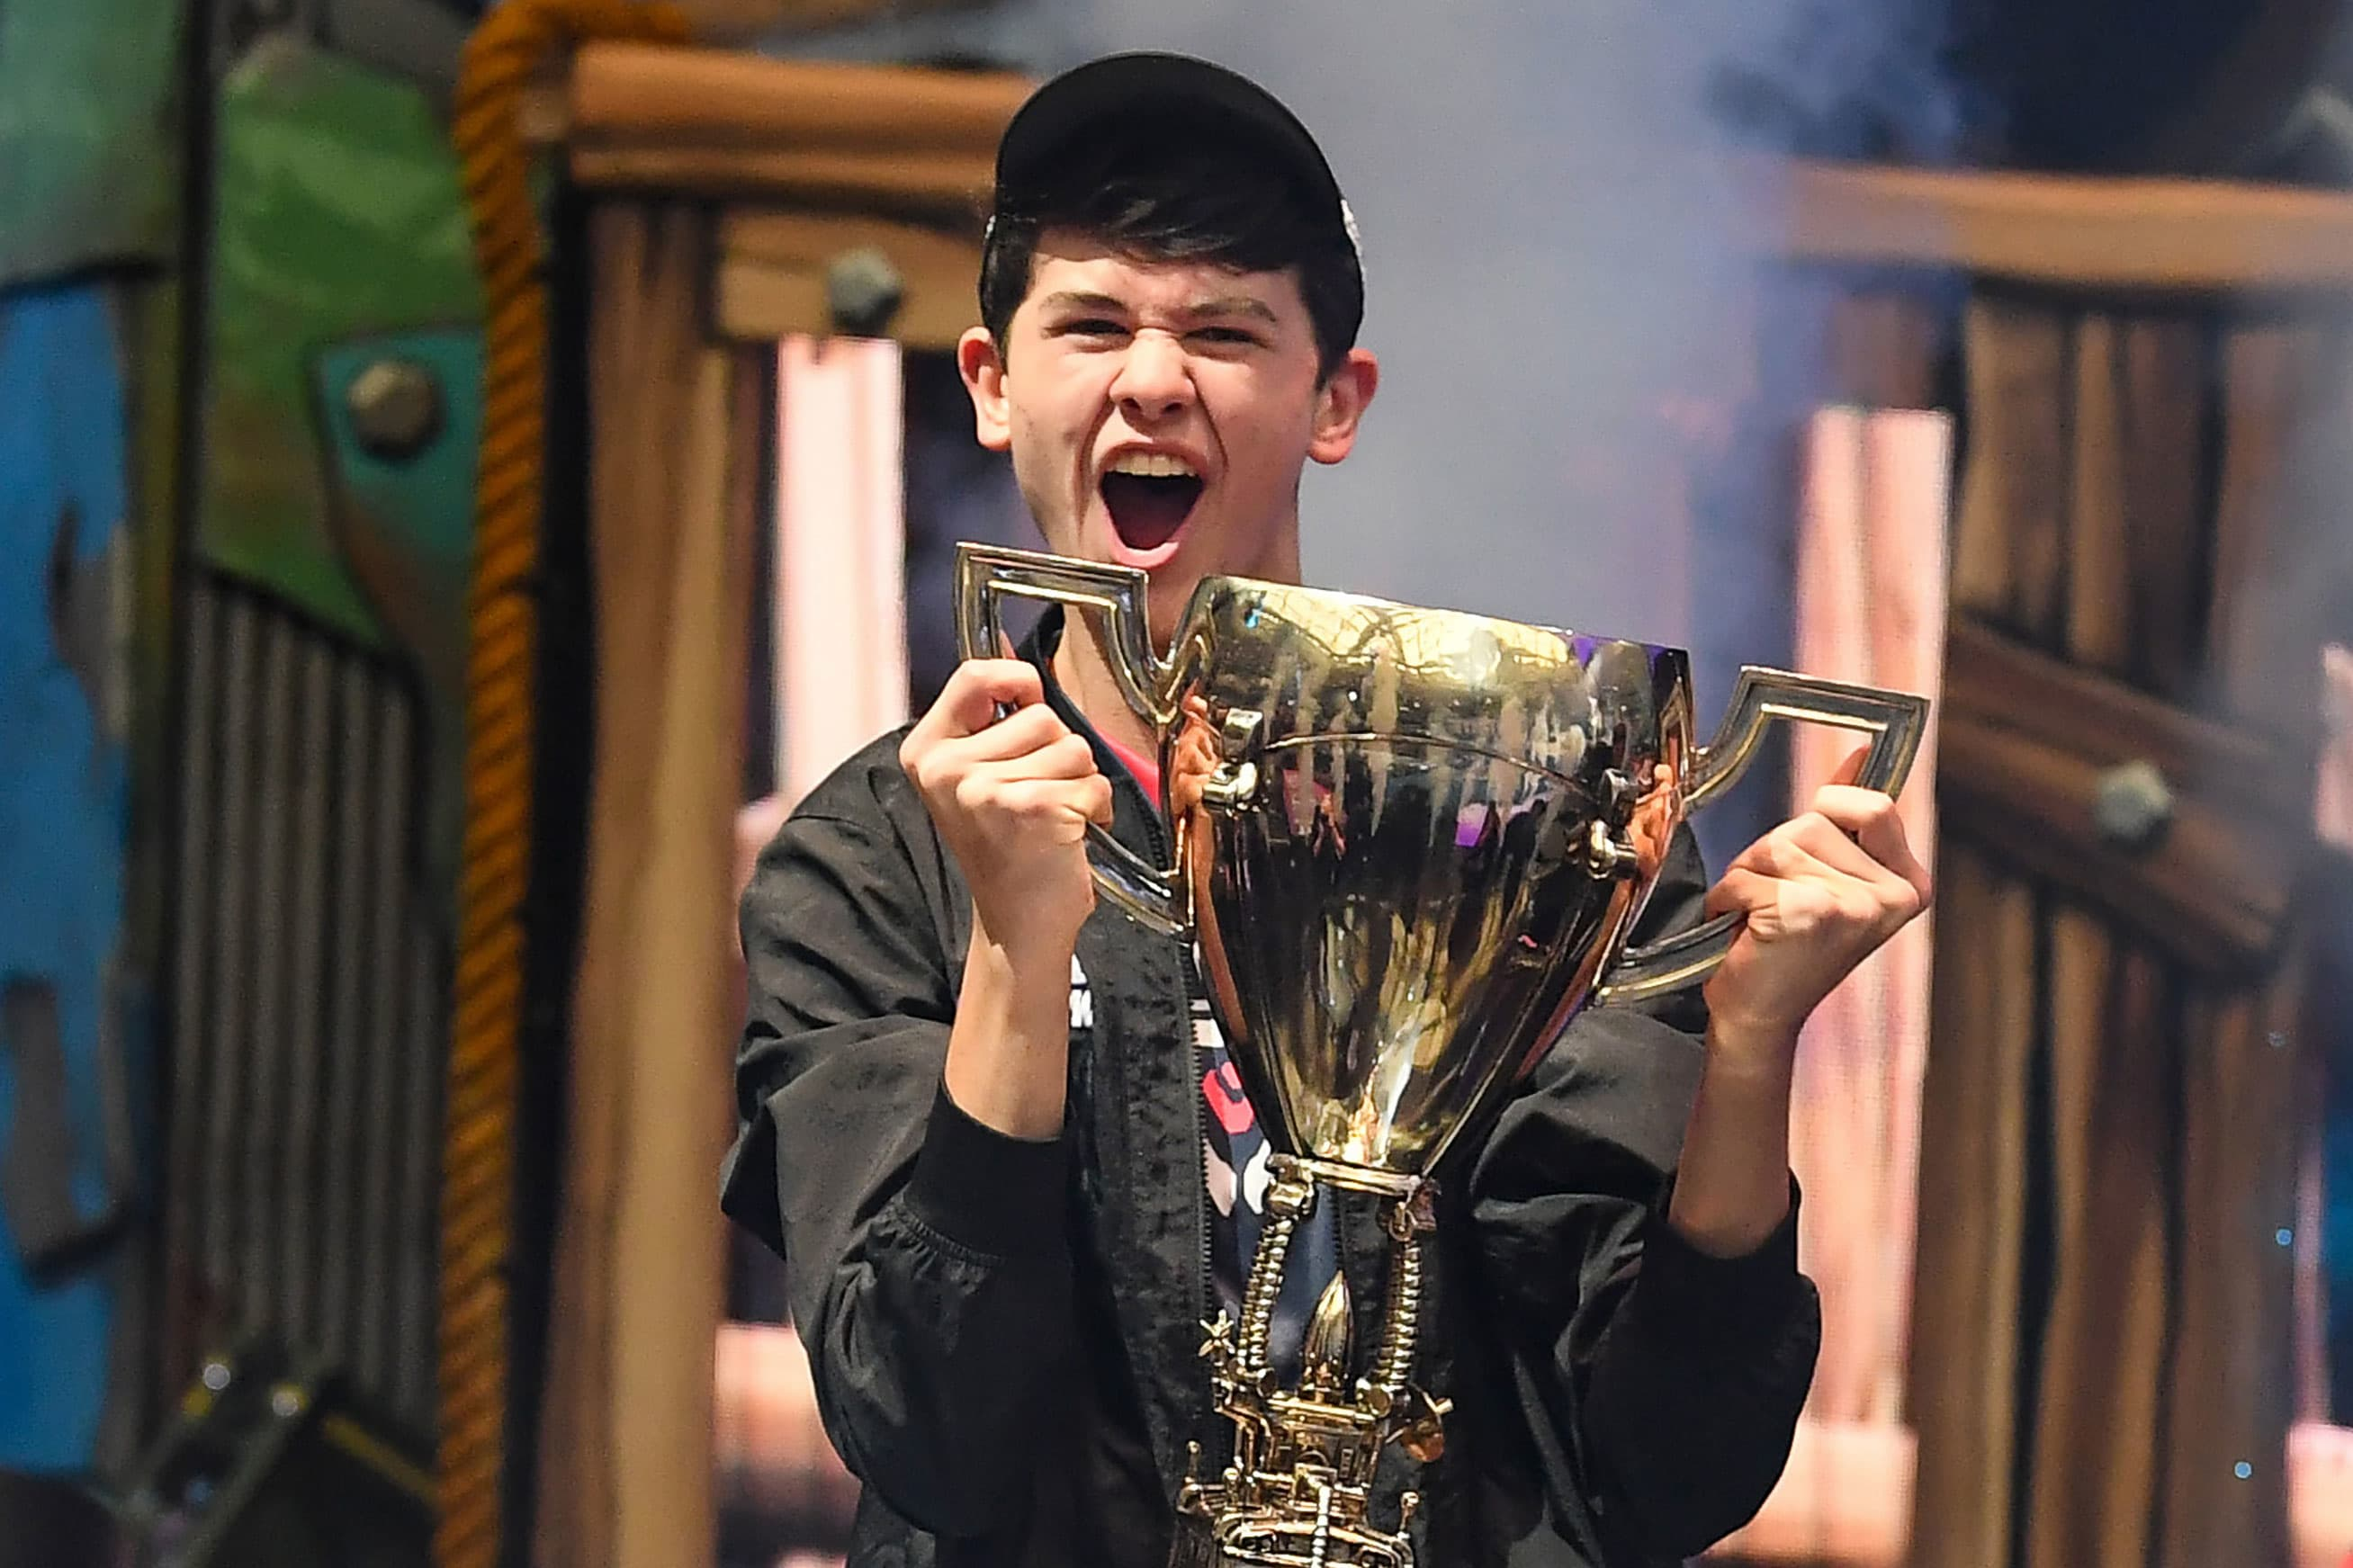 Here's the 16-year-old who won $3 million at the Fortnite World Cup